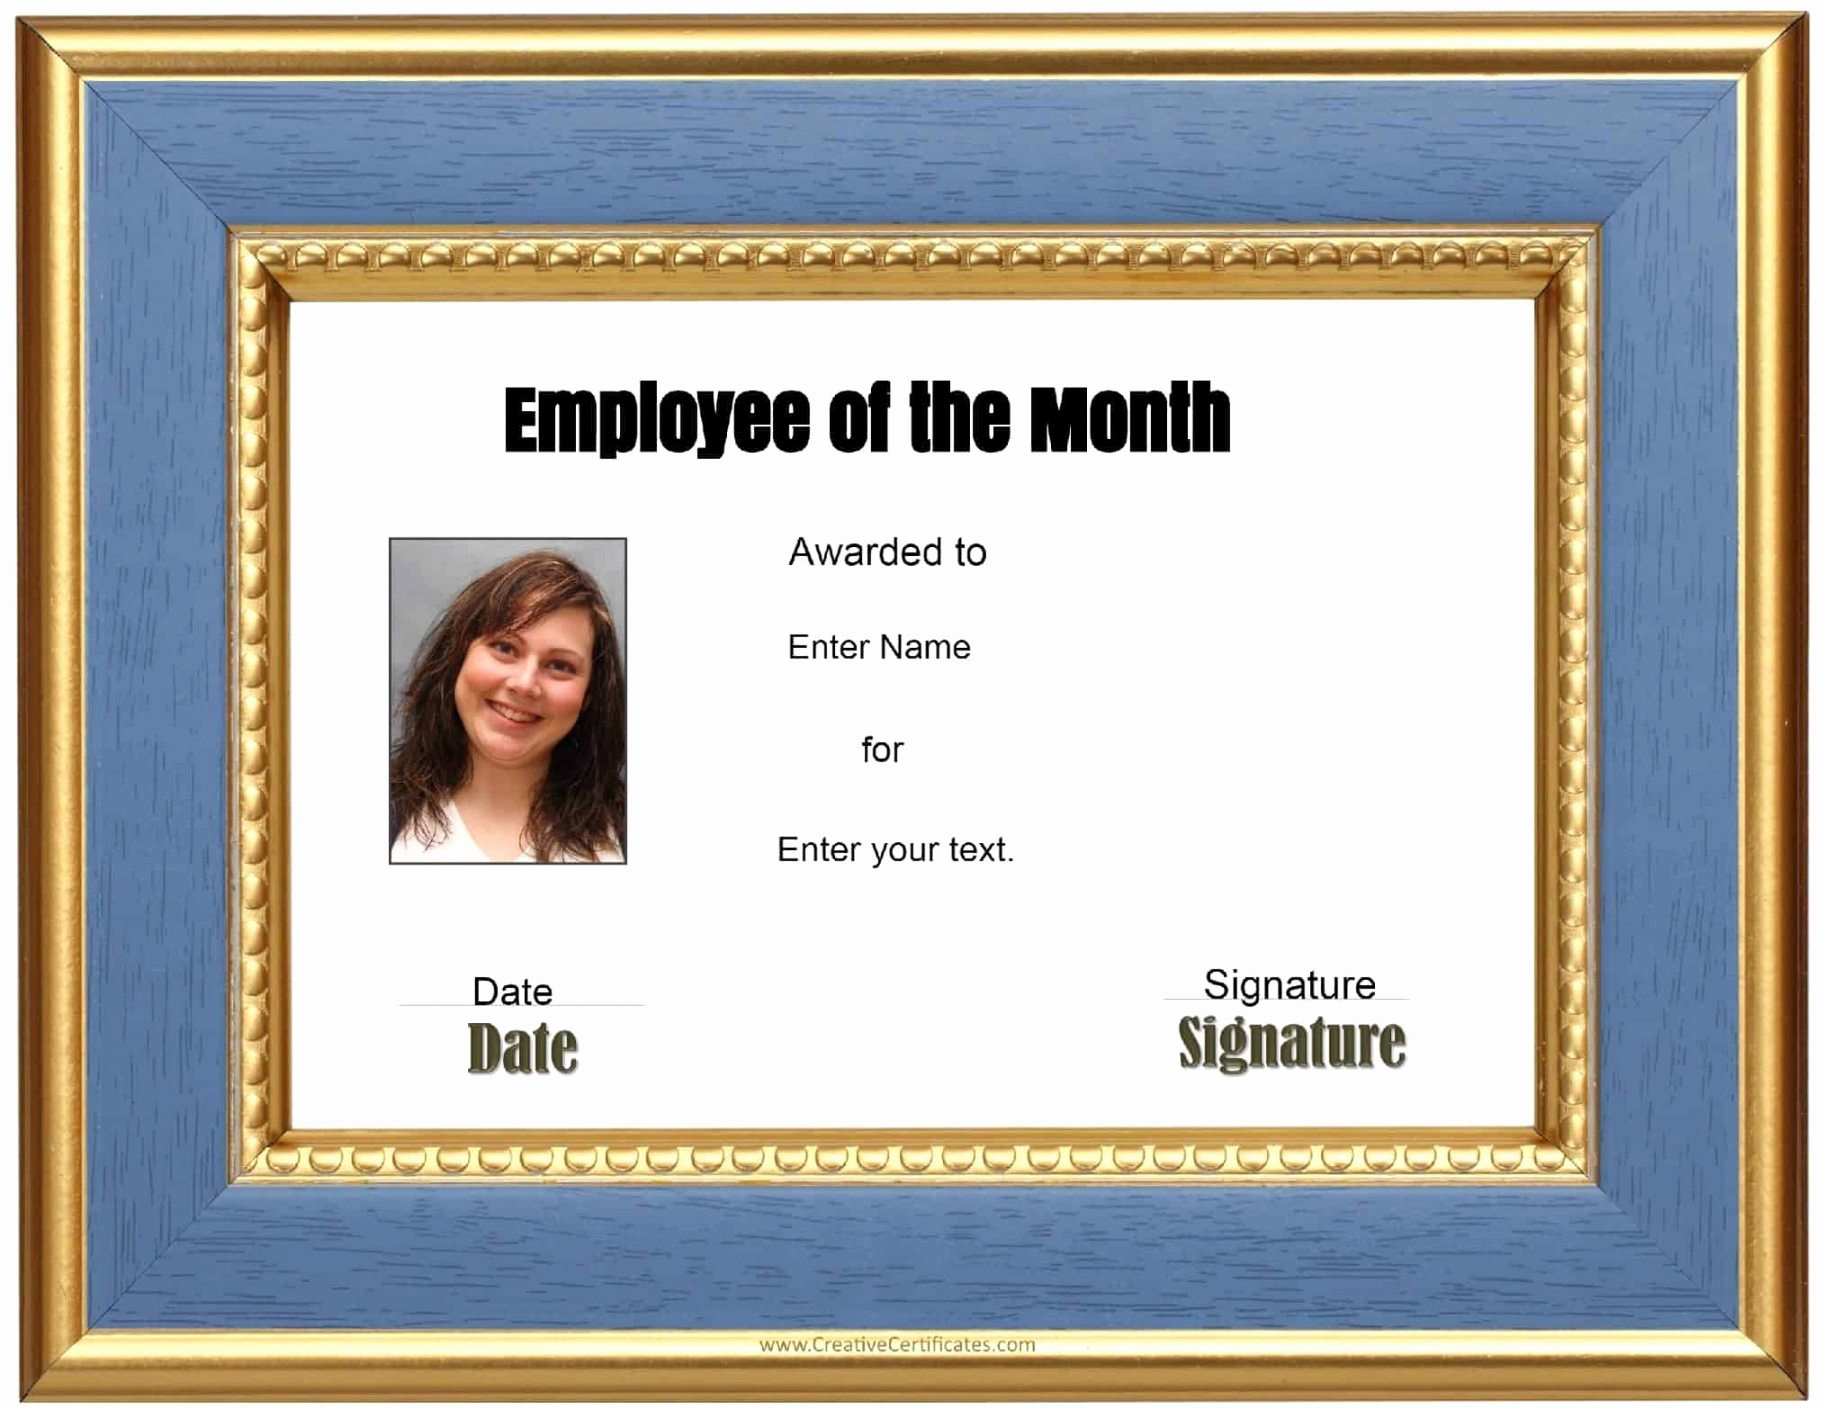 Printable Employee Of the Month Certificate Inspirational Employee the Month Certificate Template